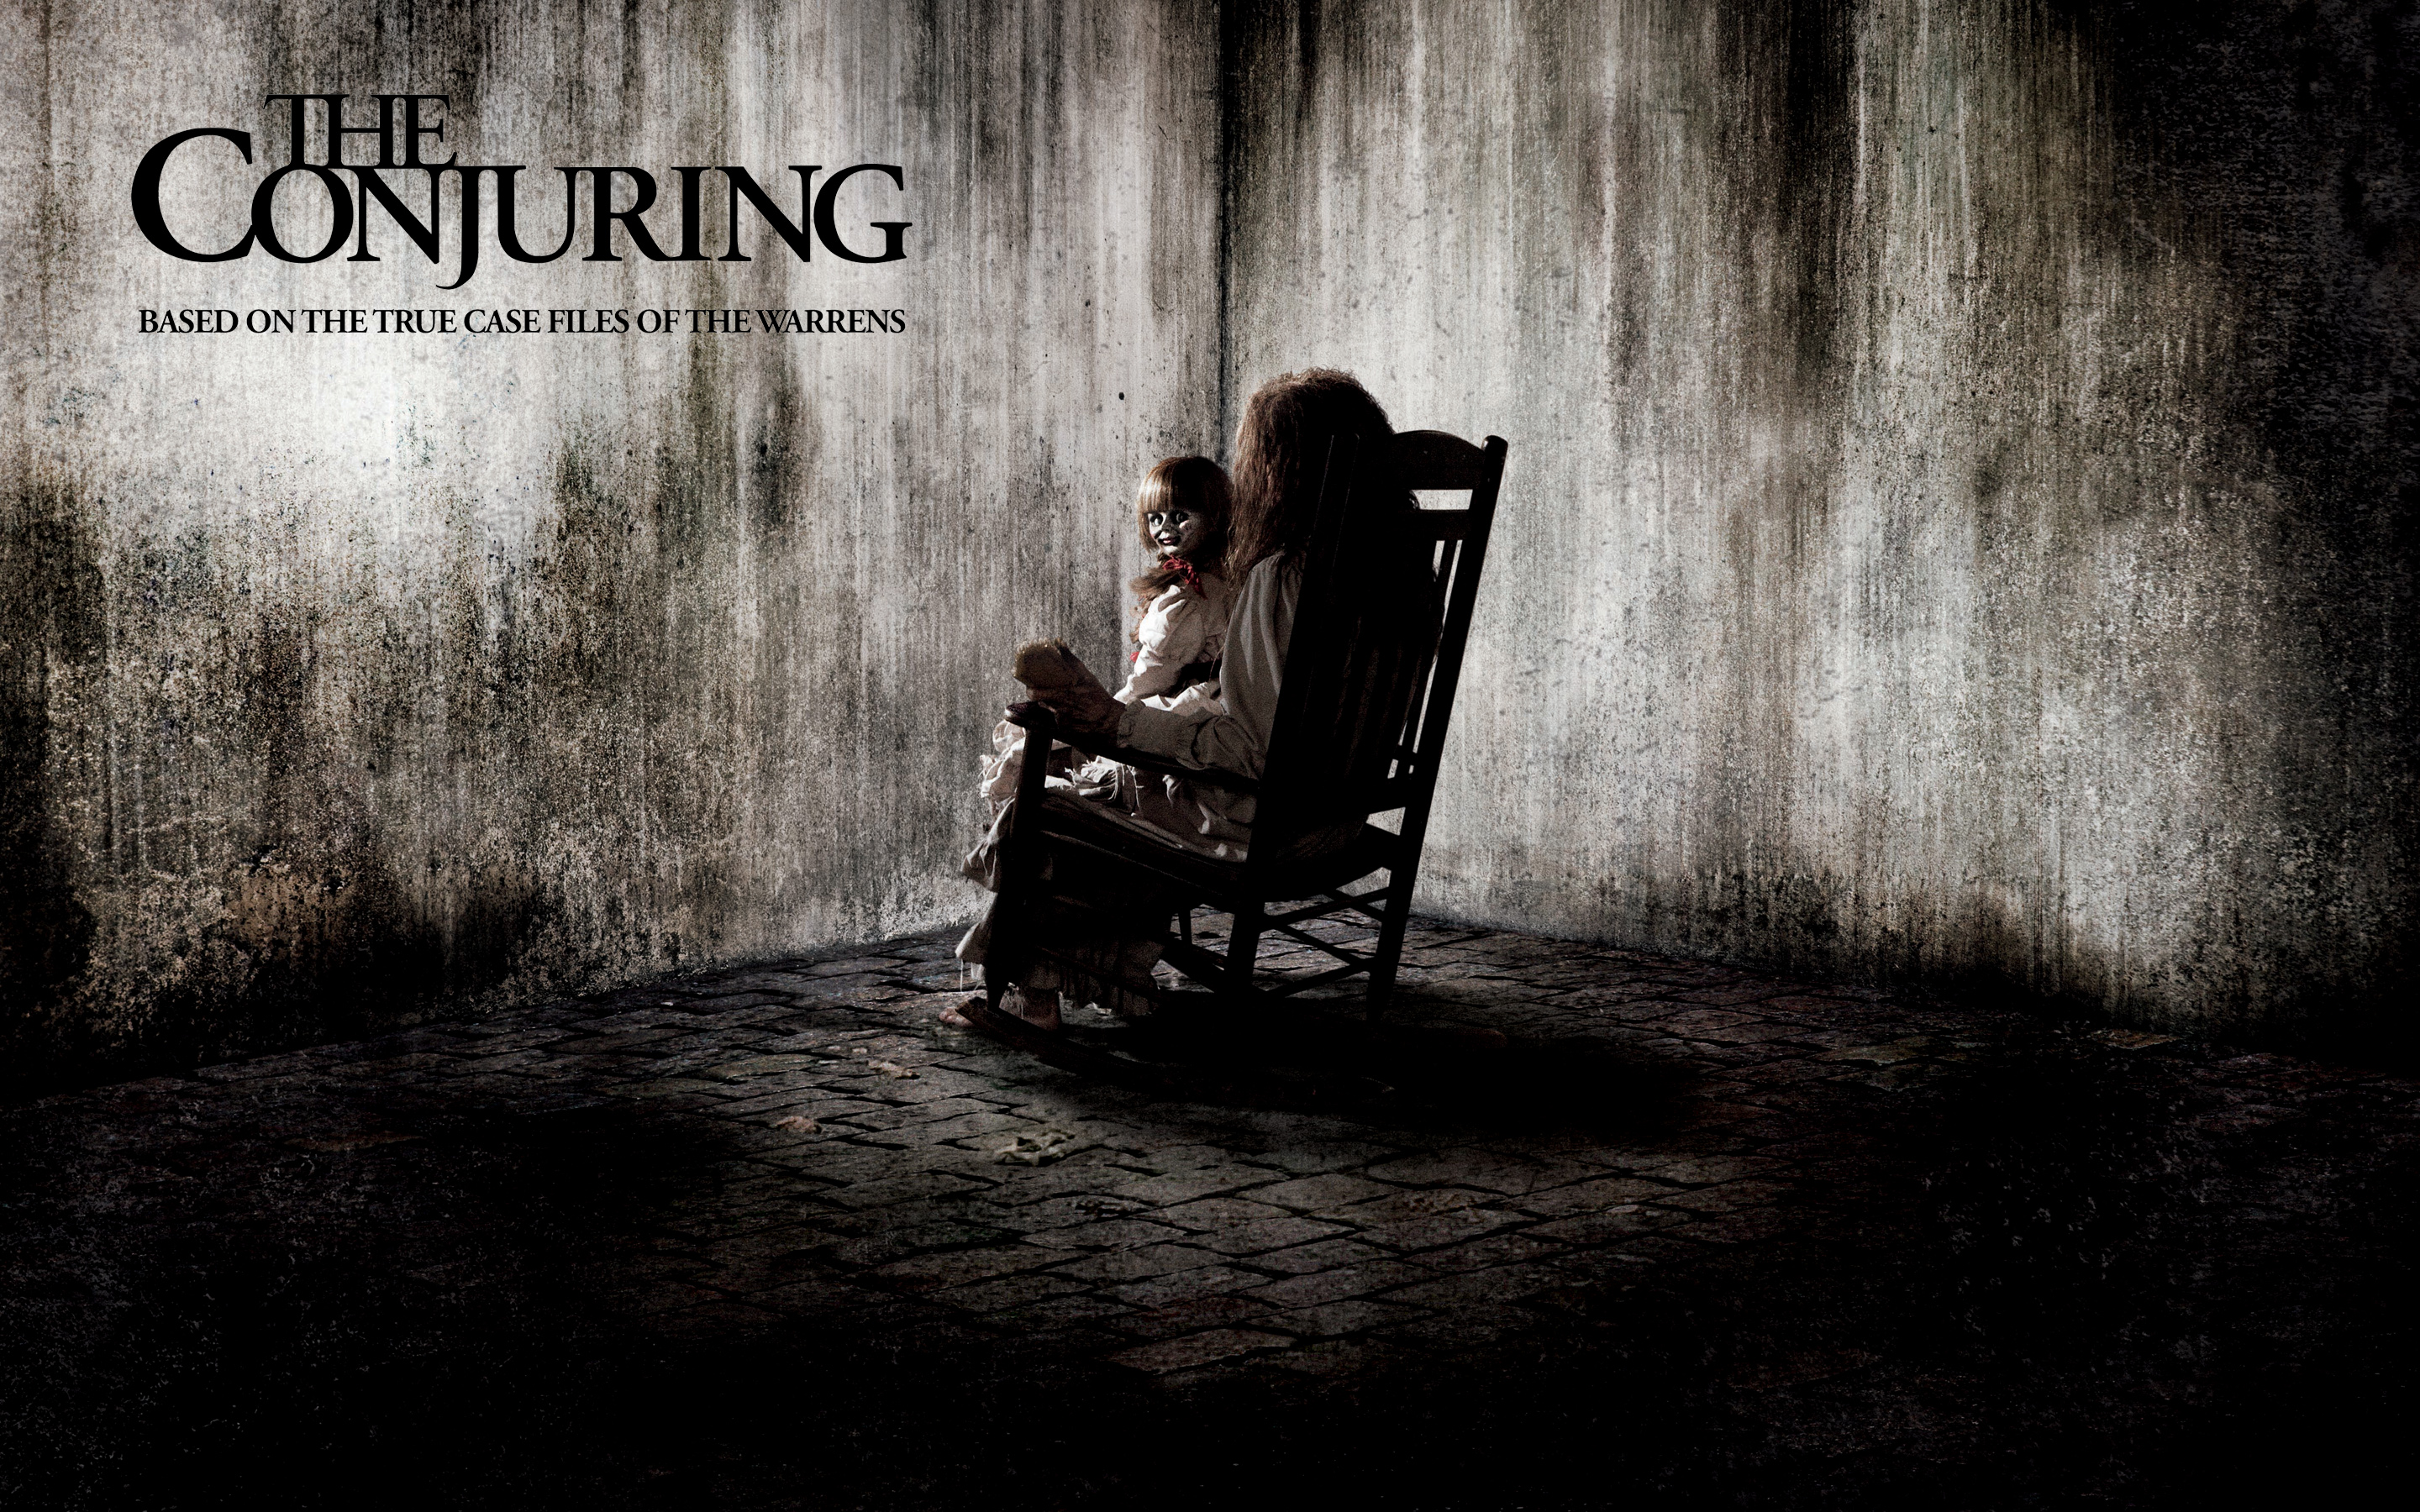 the conjuring sequel has started casting